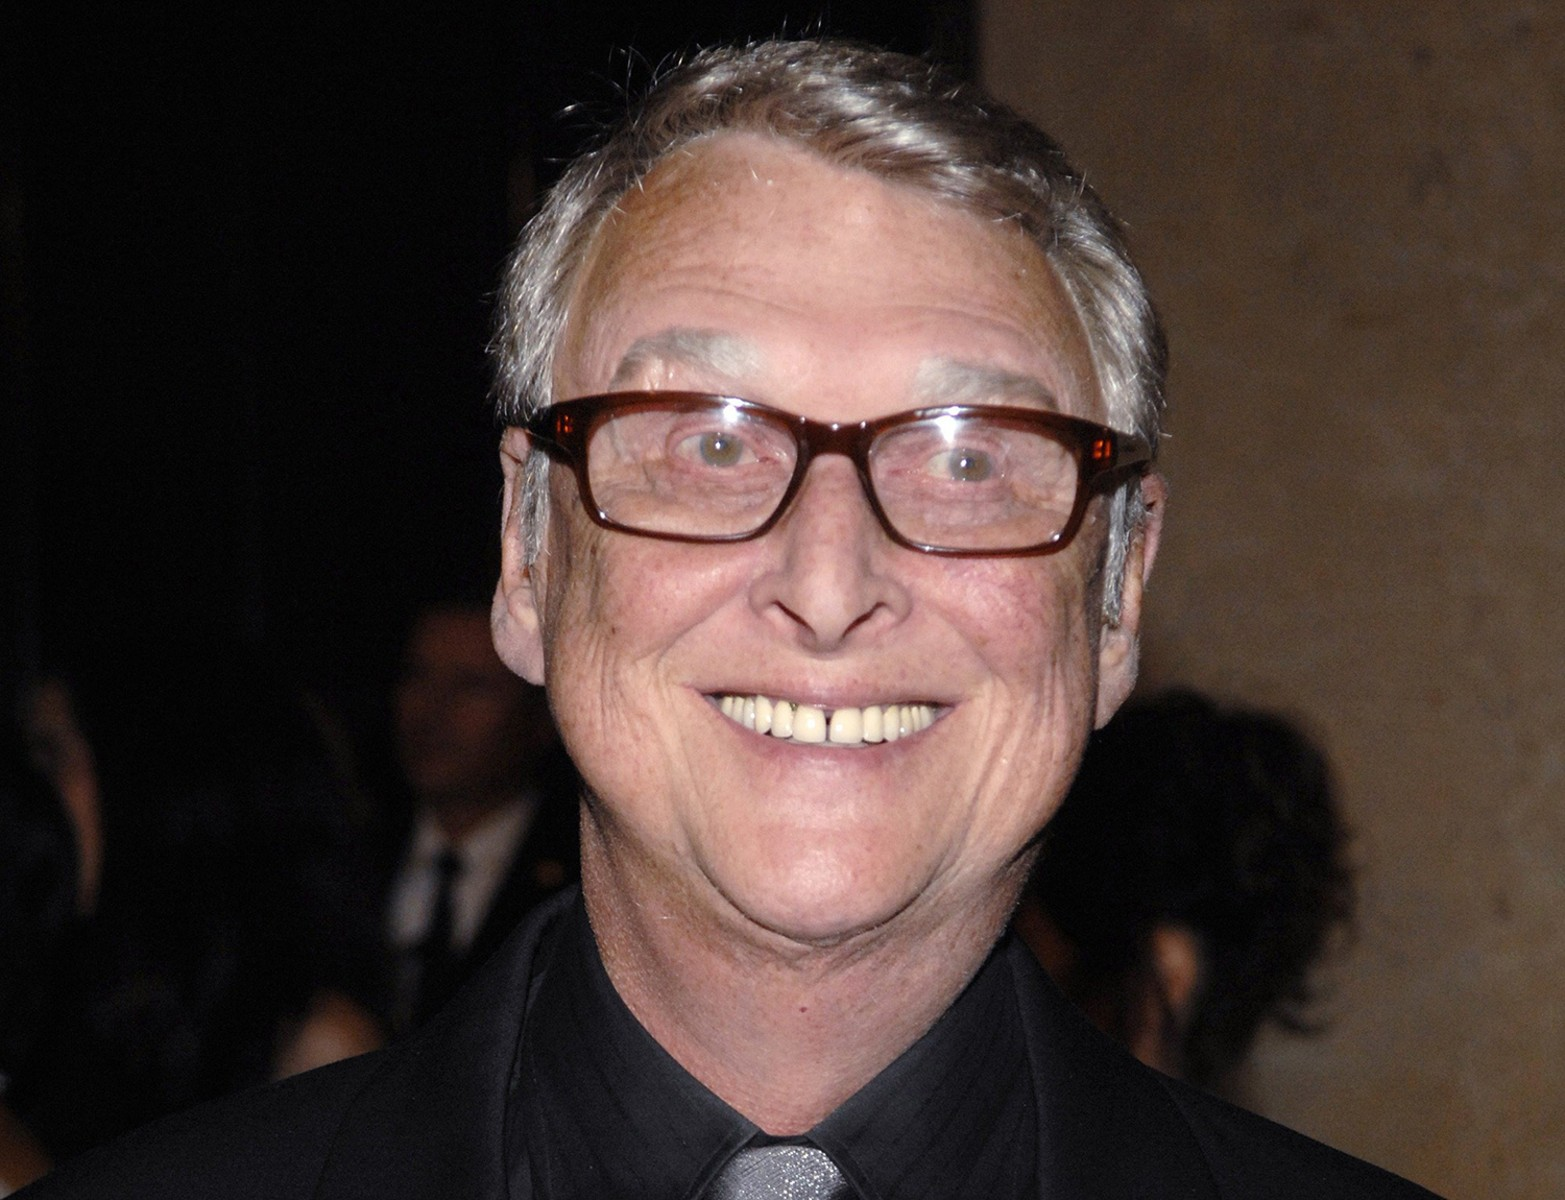 Image: File photo of director Mike Nichols arriving for the 2007 American Cinematheque Awards Show in Beverly Hills